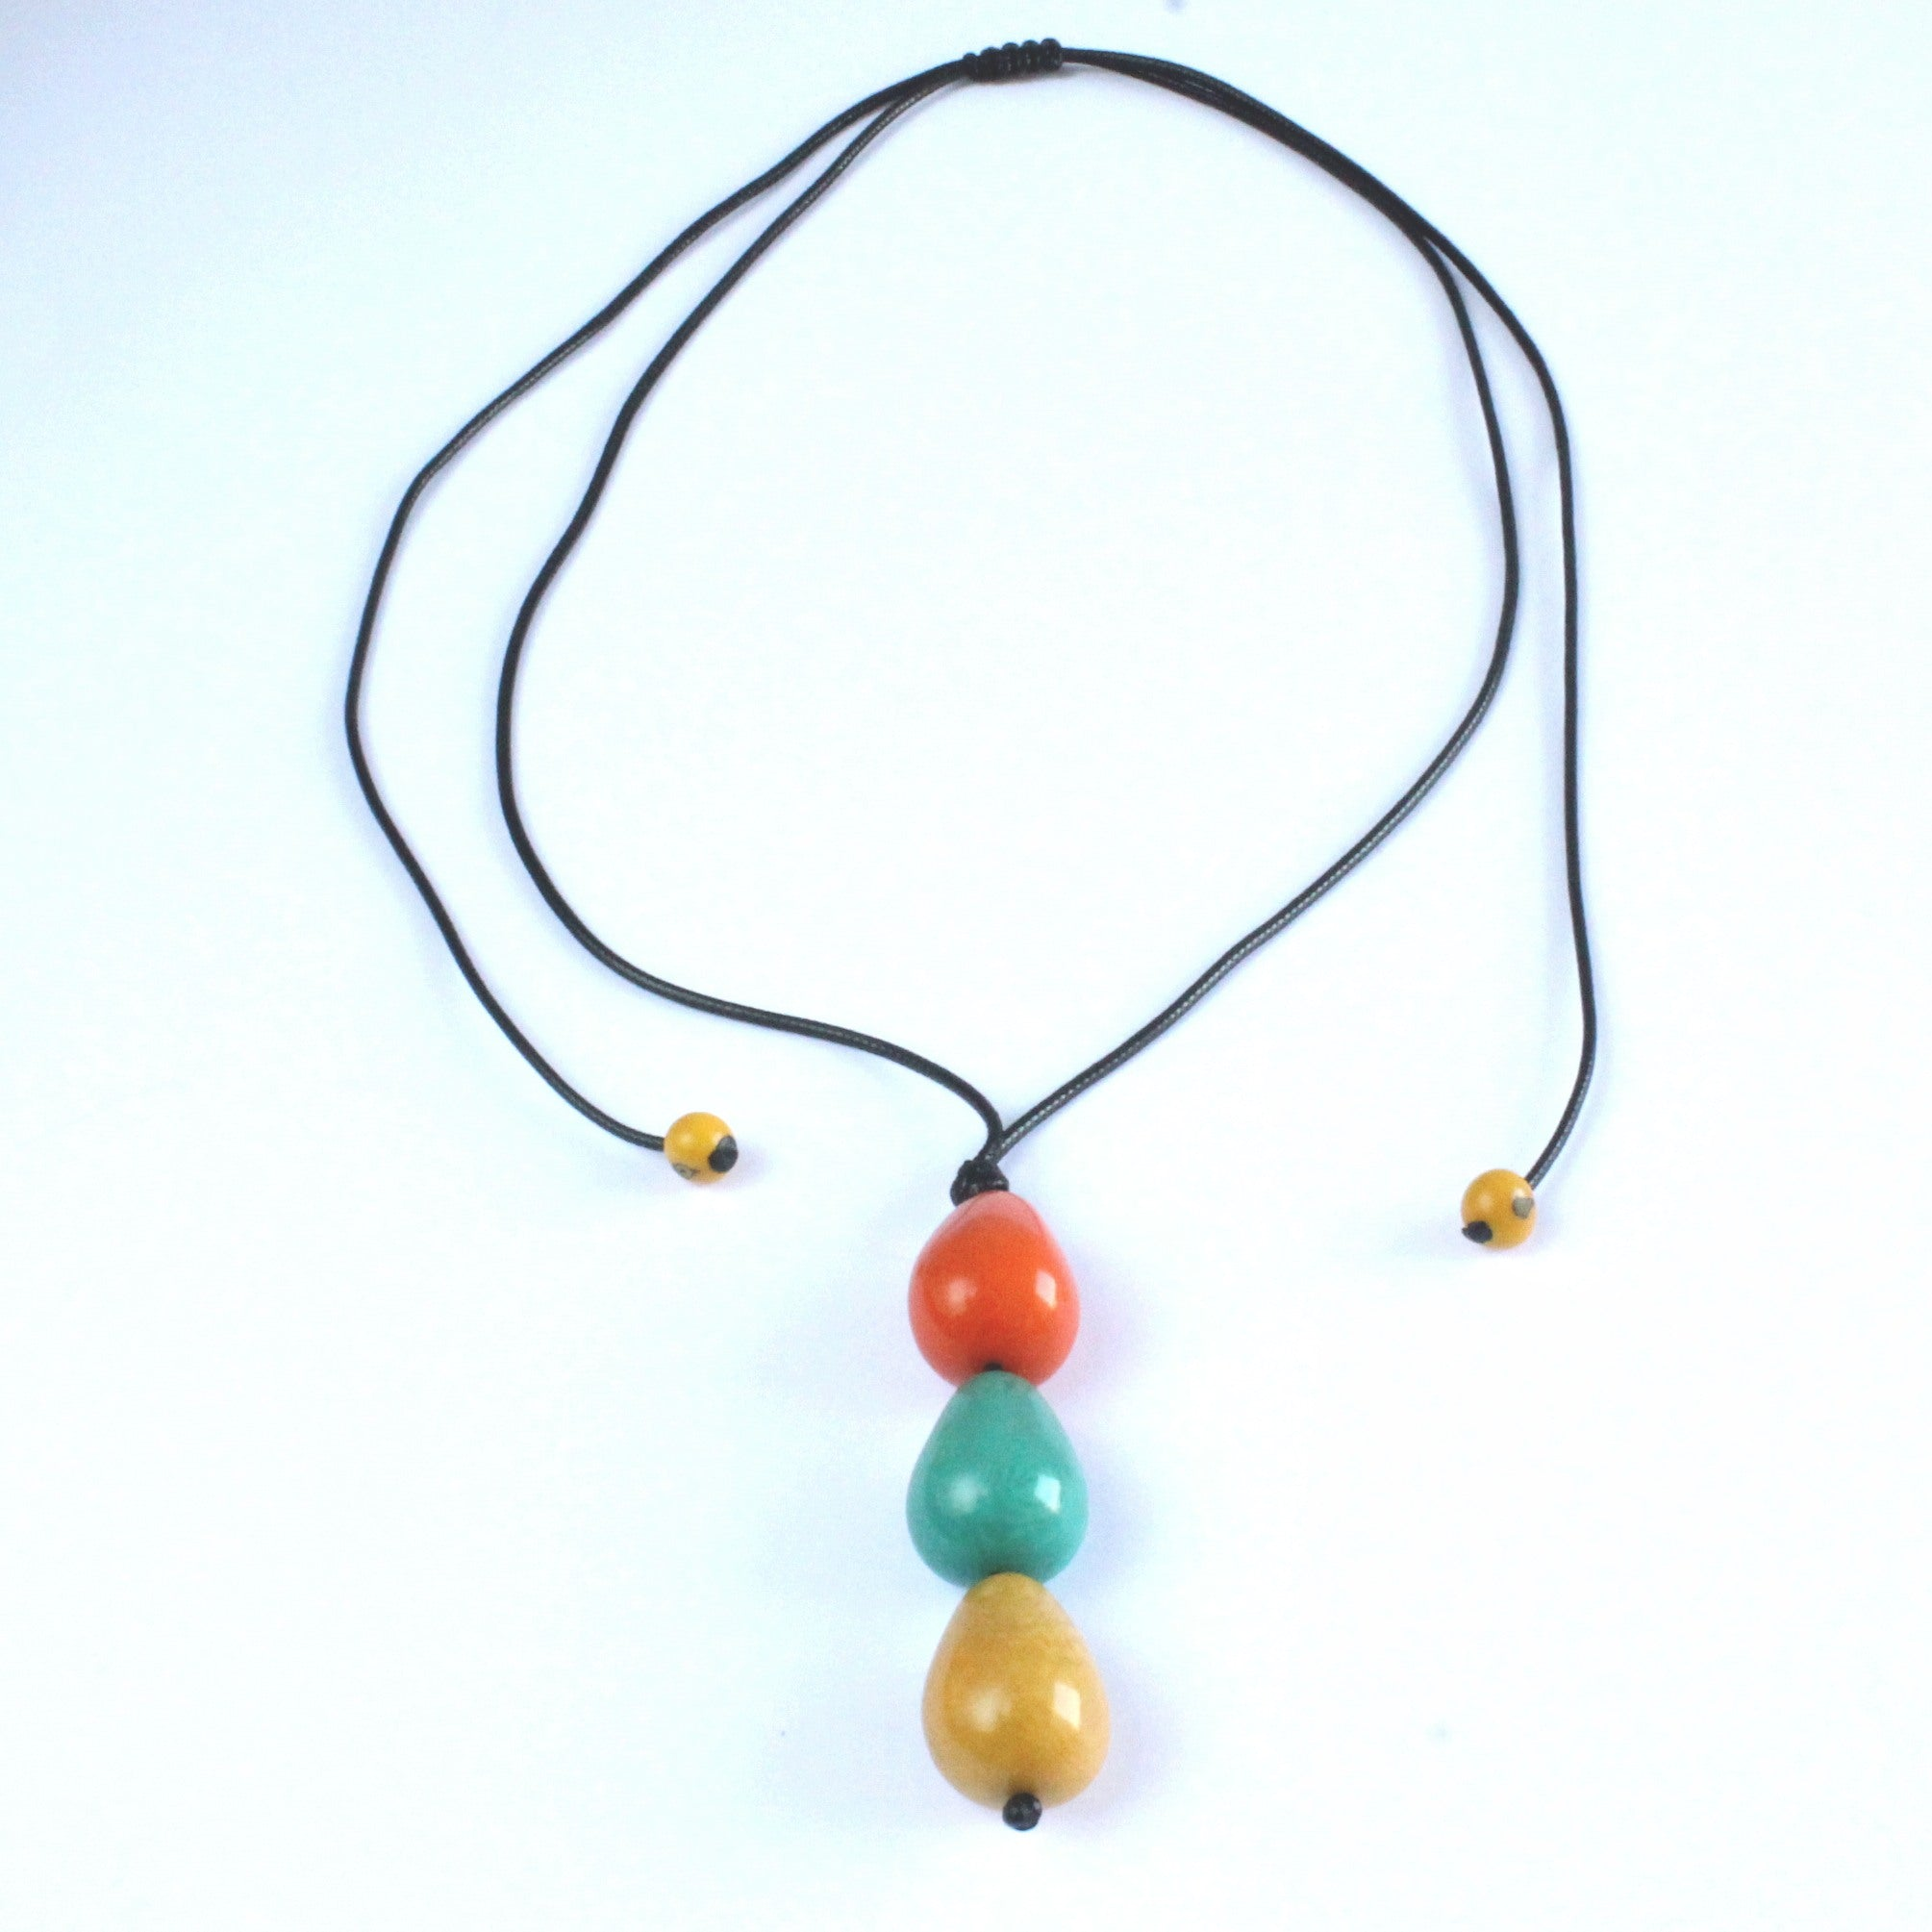 Necklace, handmade, sustainable tagua nut, multicolour